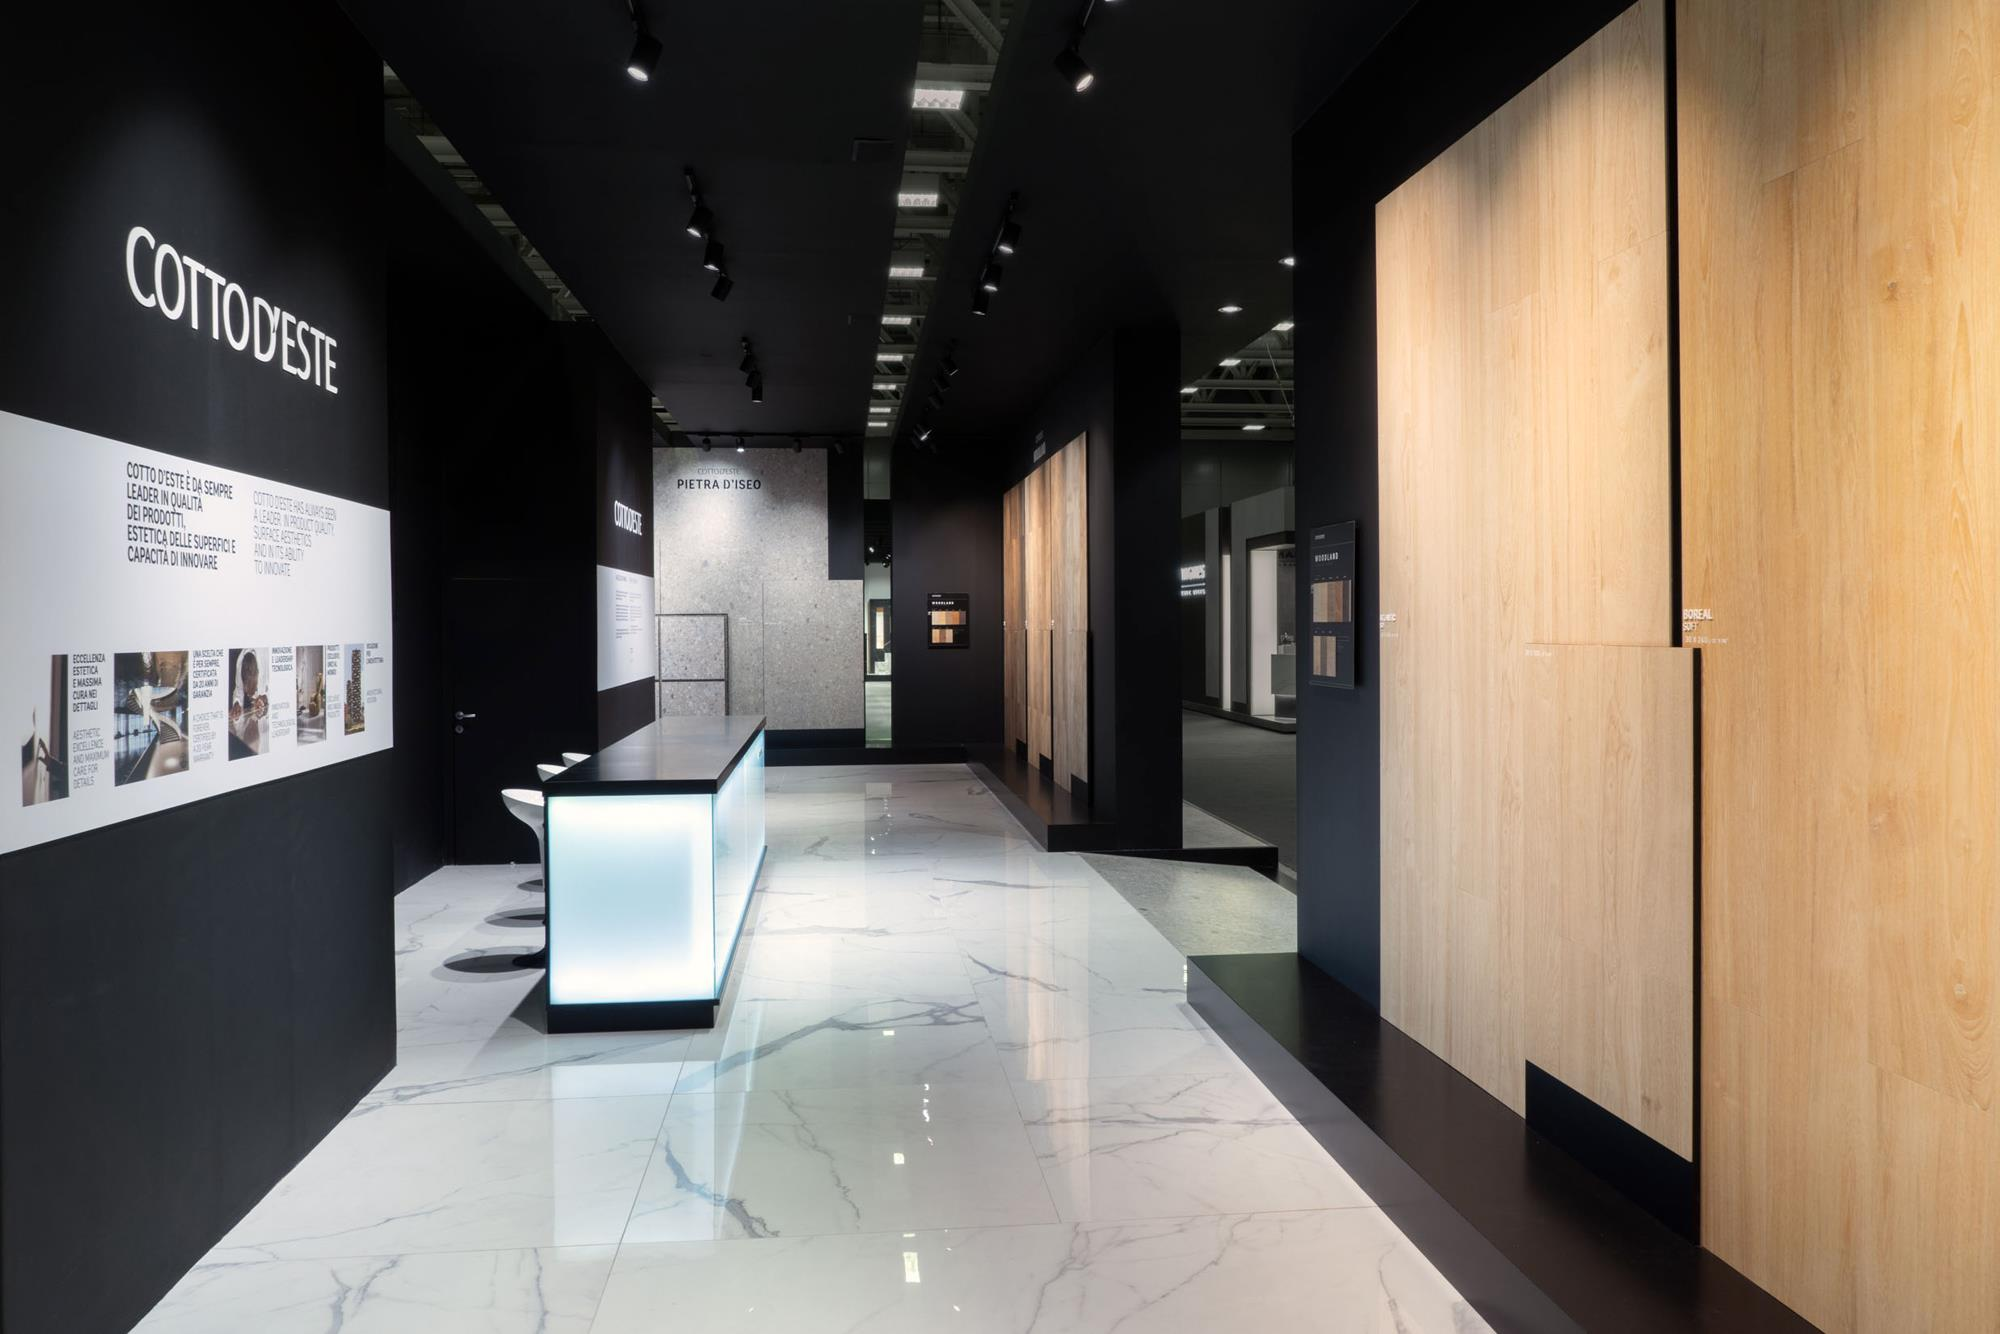 Cersaie 2018, Cotto d'Este takes ceramics to a new level: Photo 3